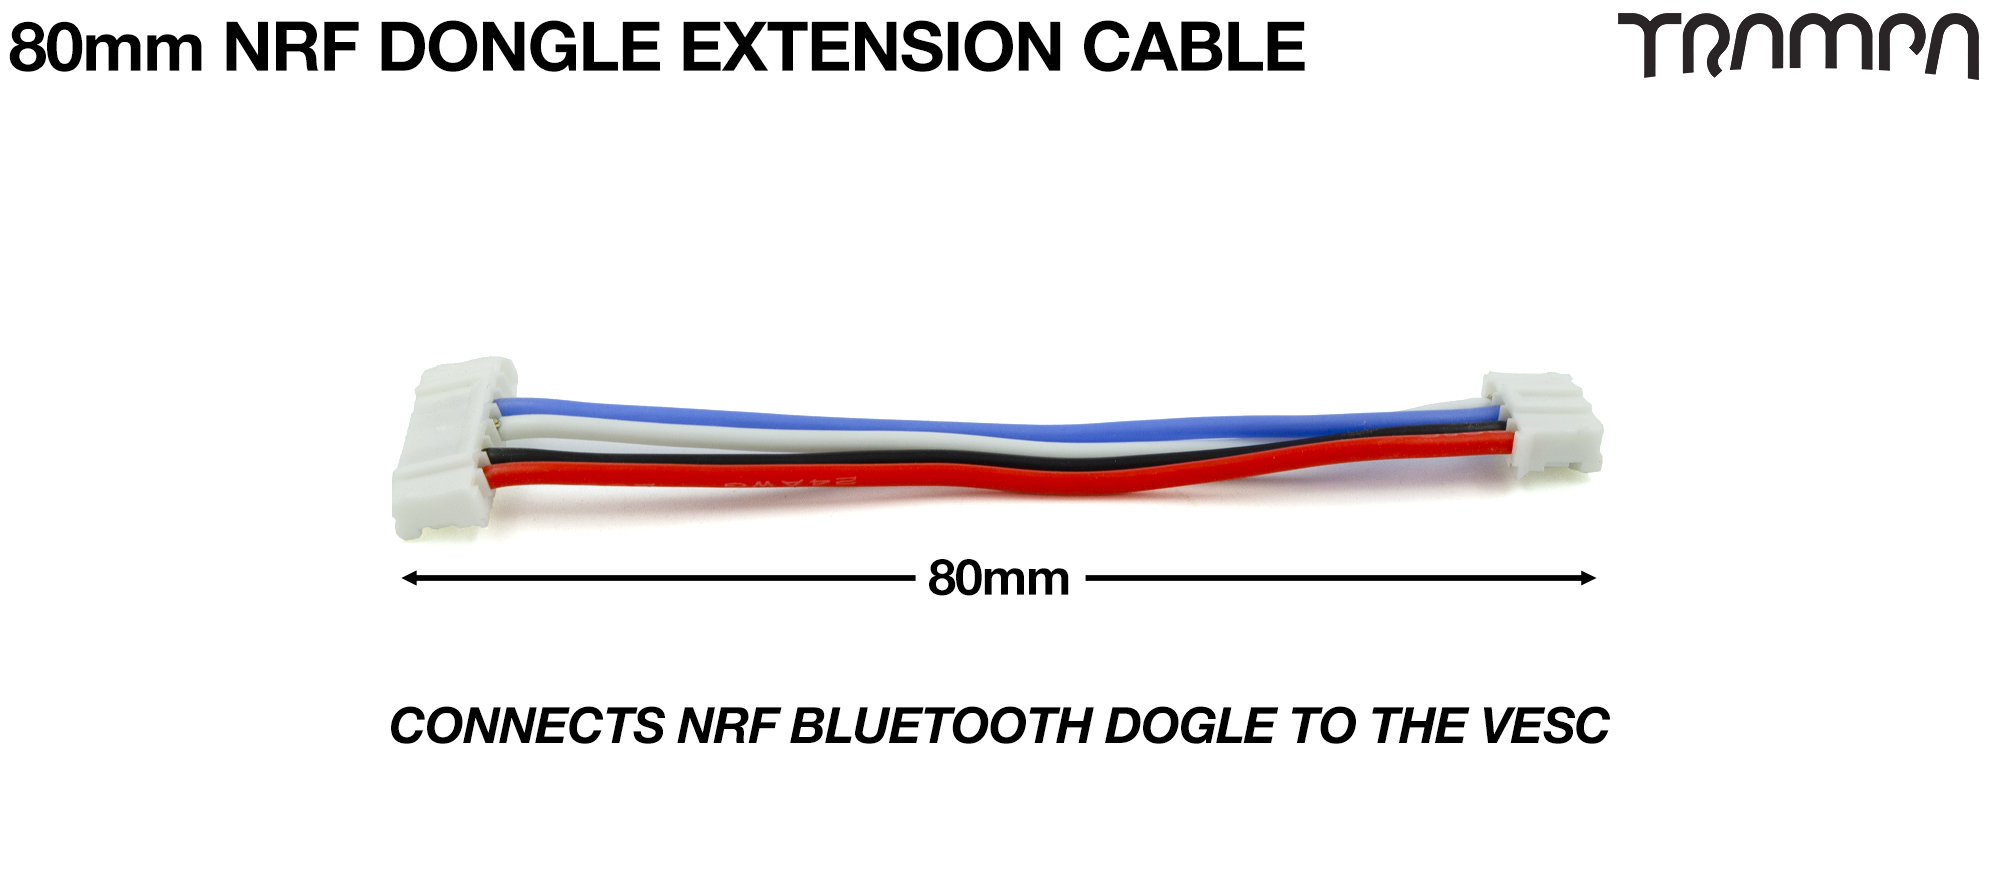 NRF Dongle Extender cable 80mm - VESC 6